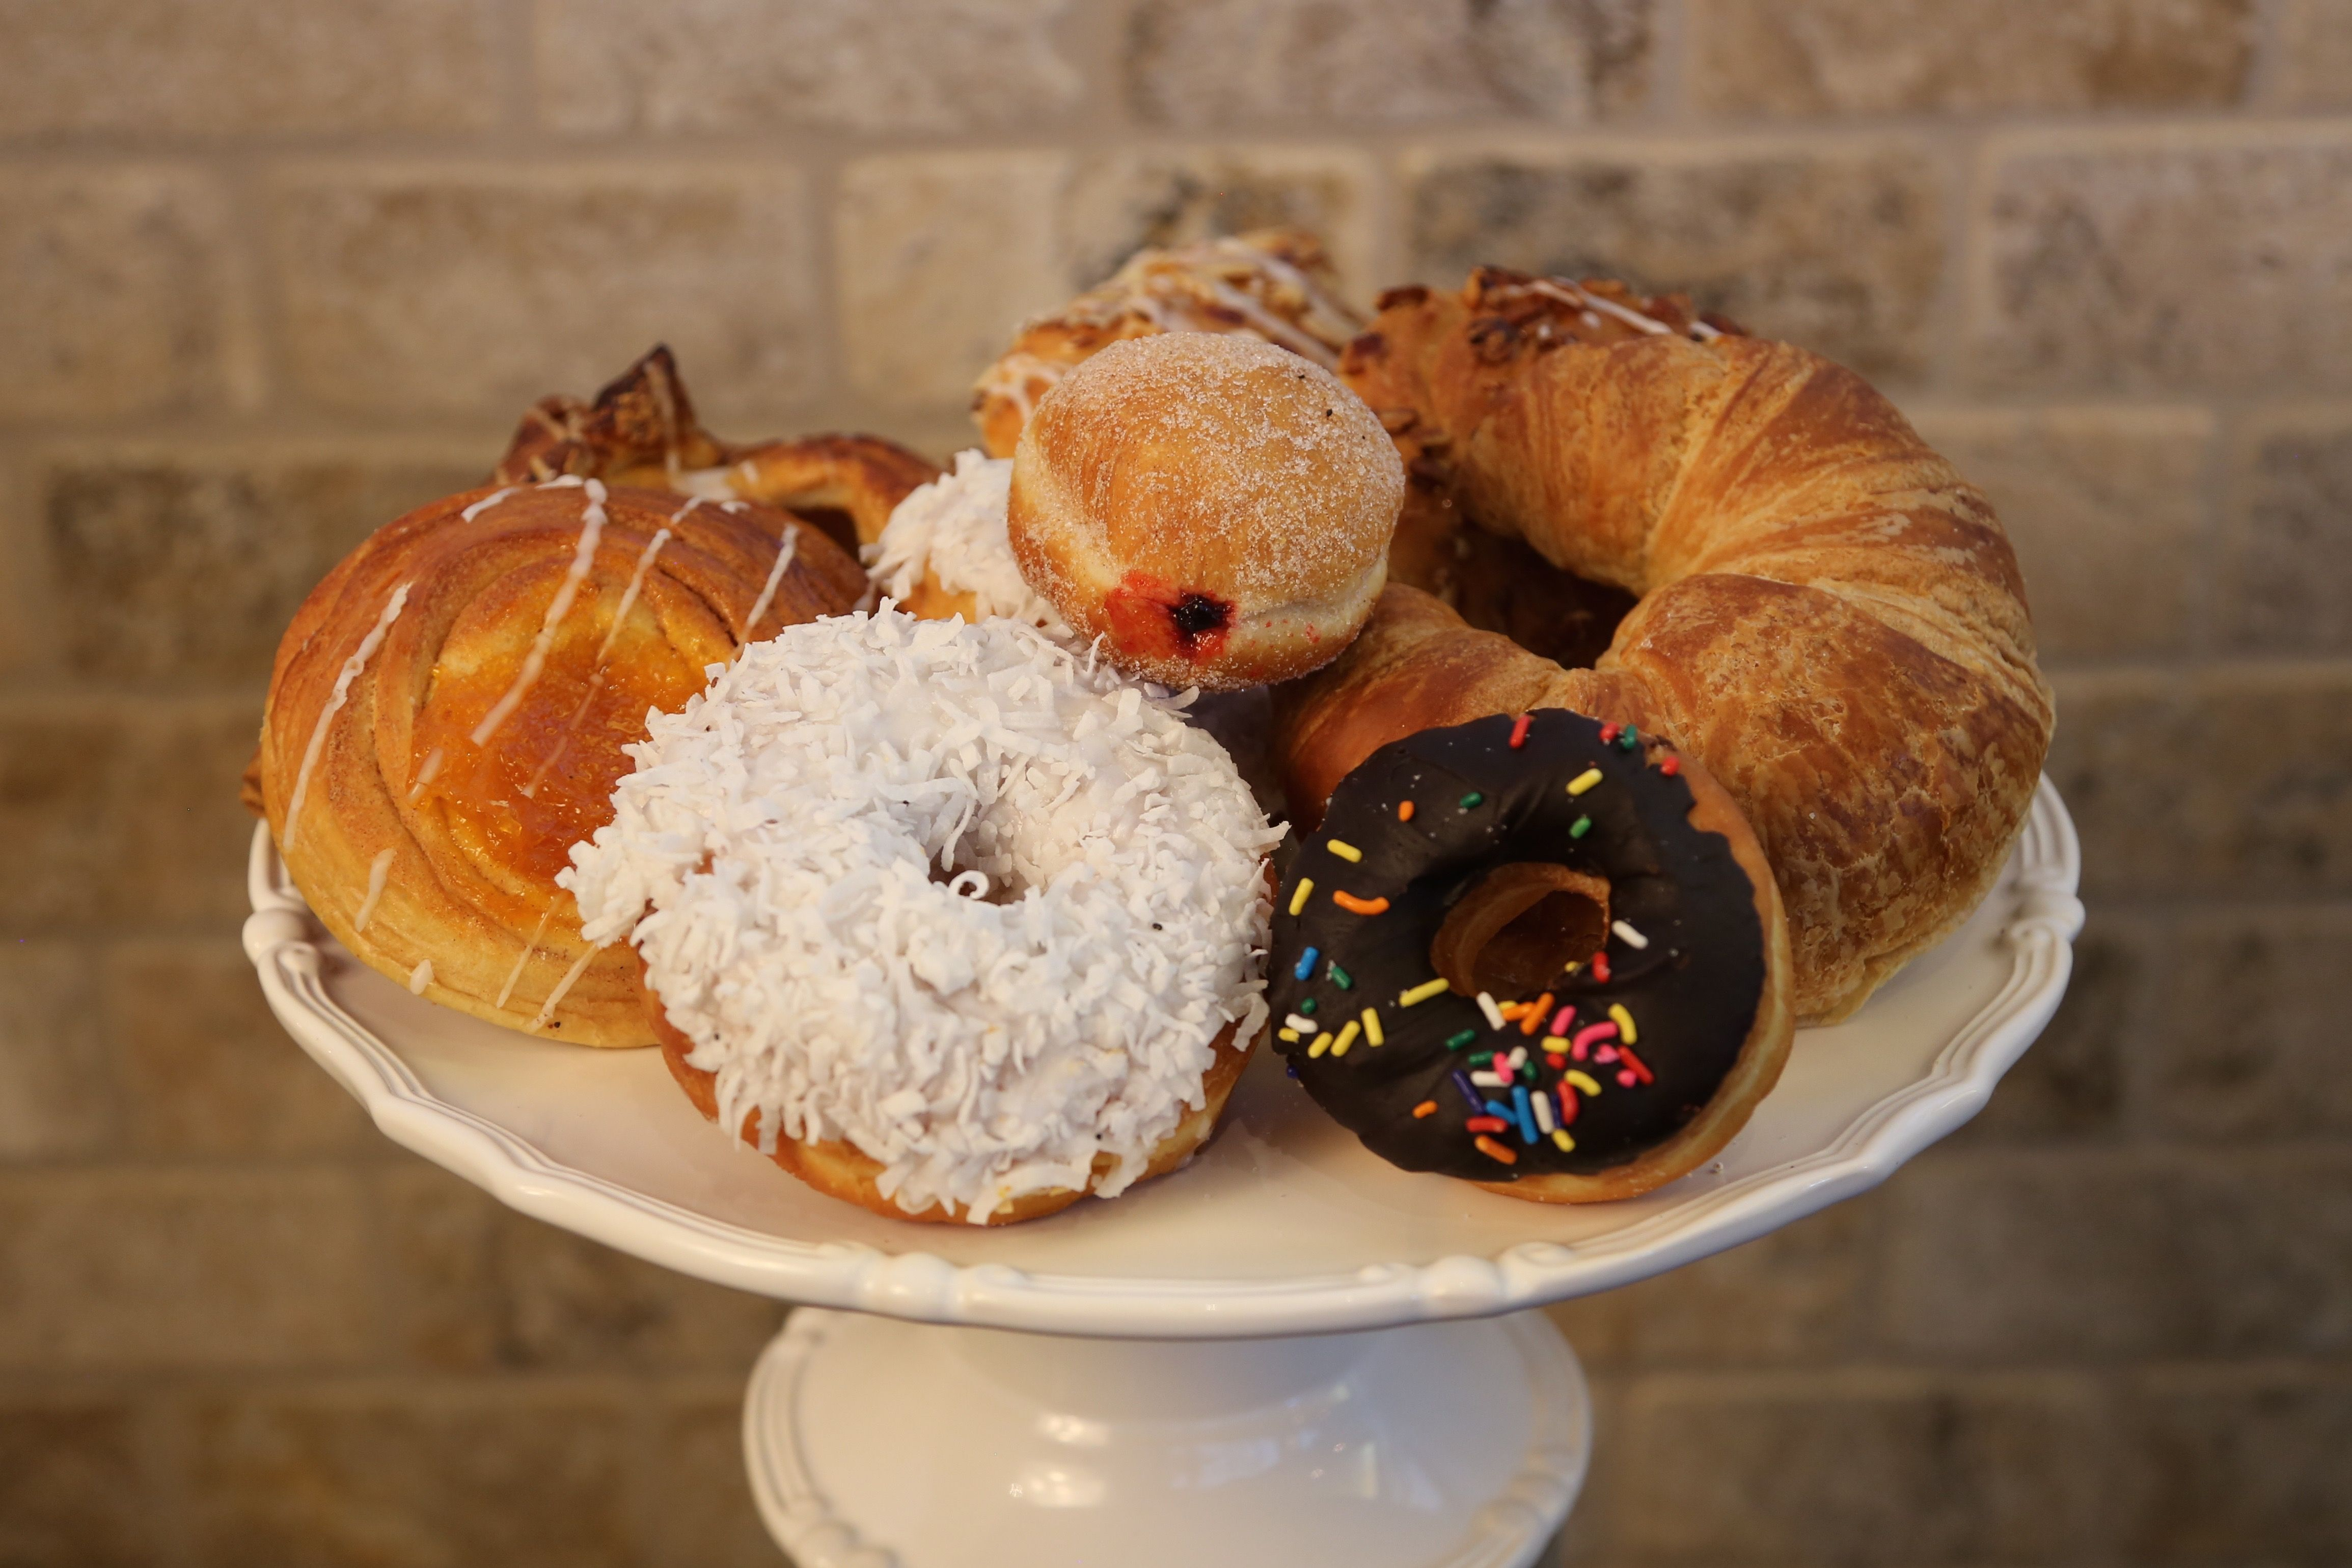 Breakfast near me with images breakfast items bakery